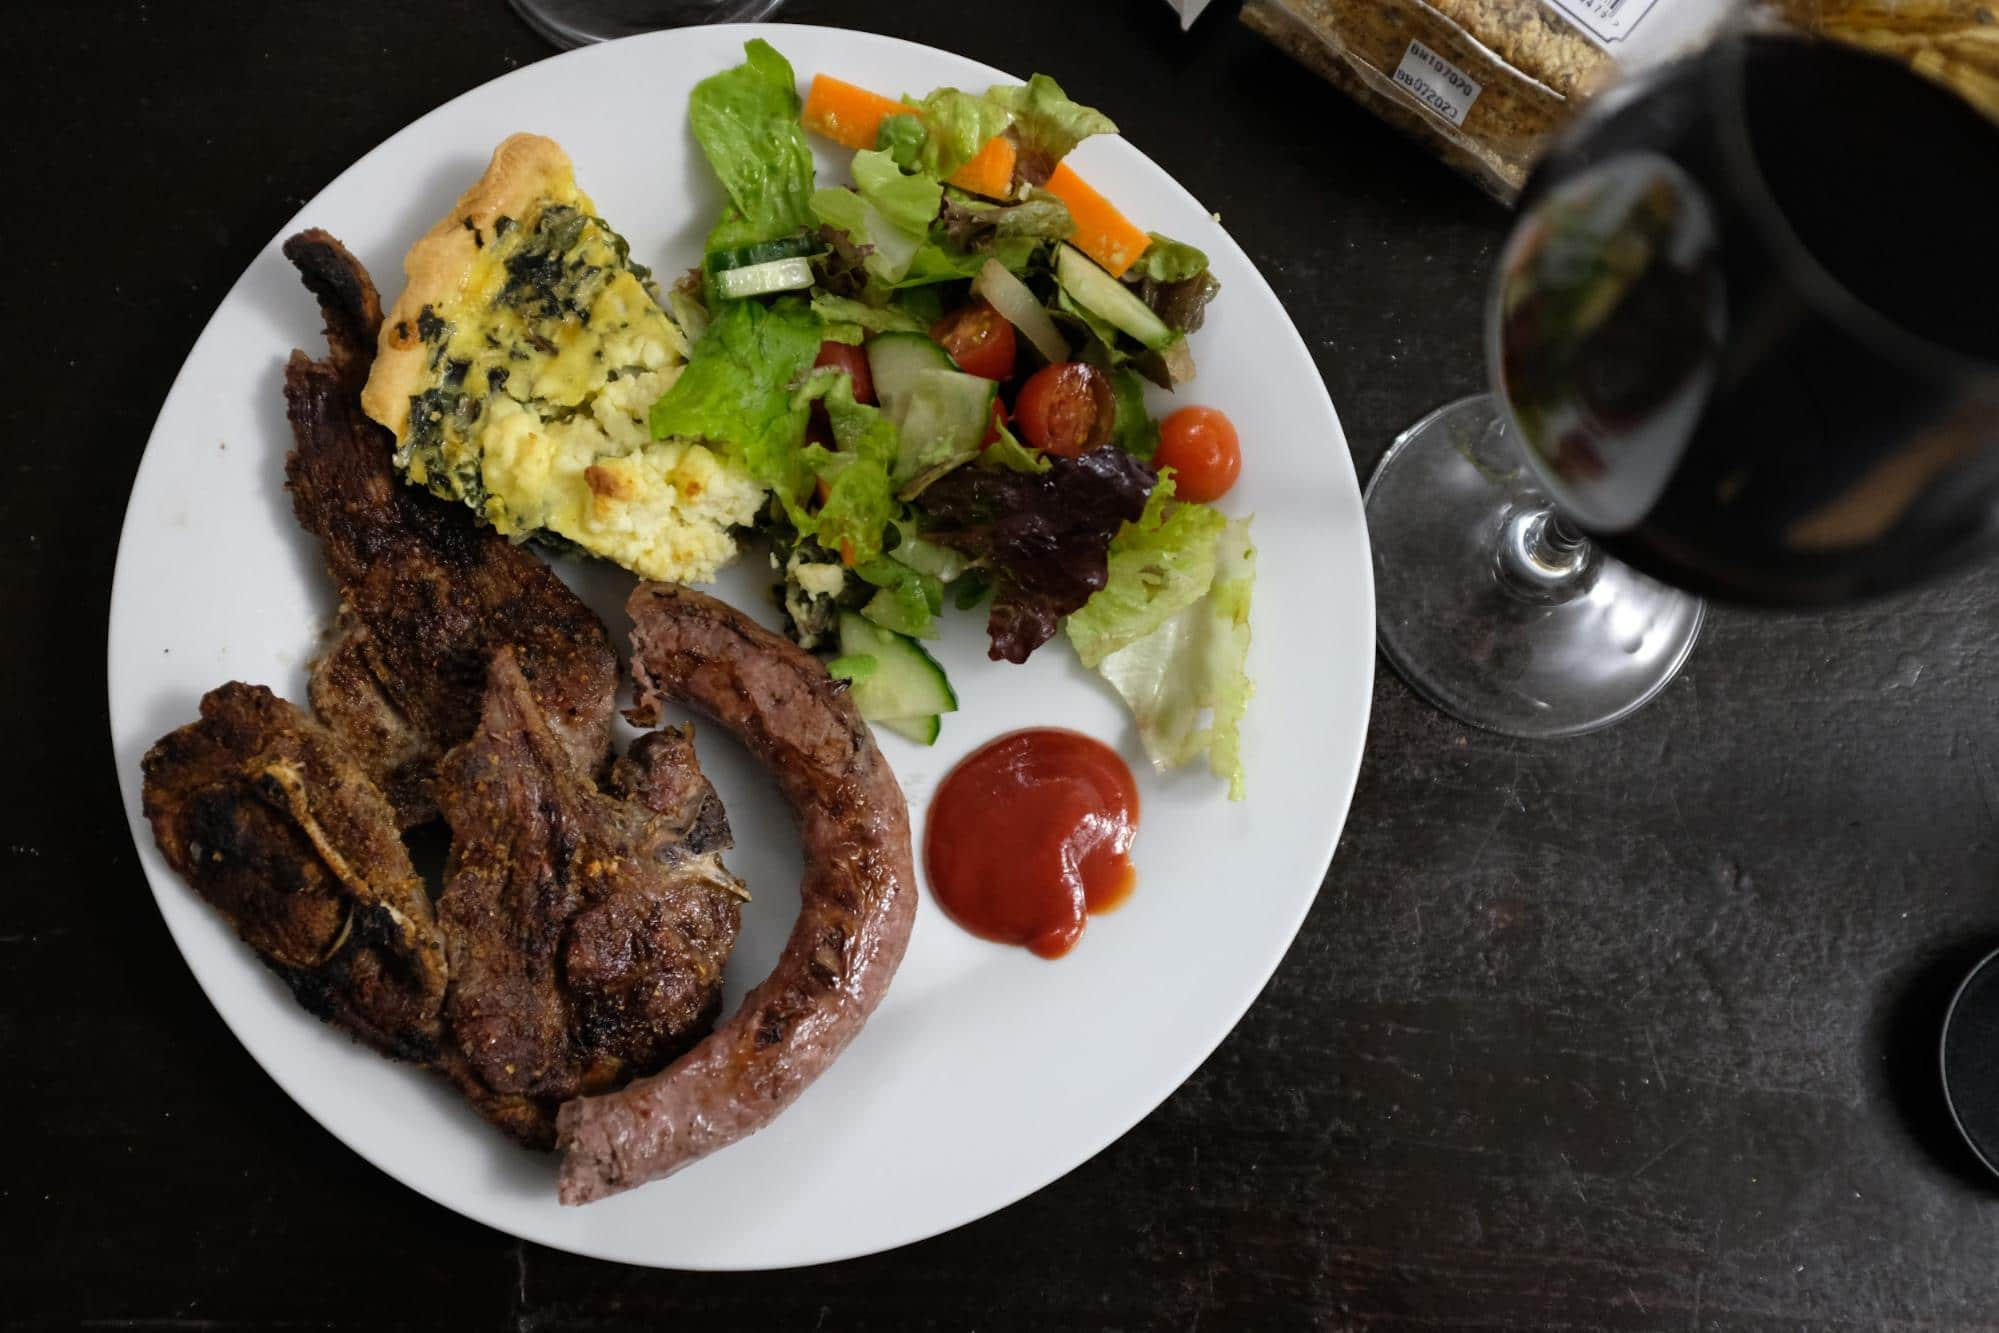 A typical South African meal from a braai